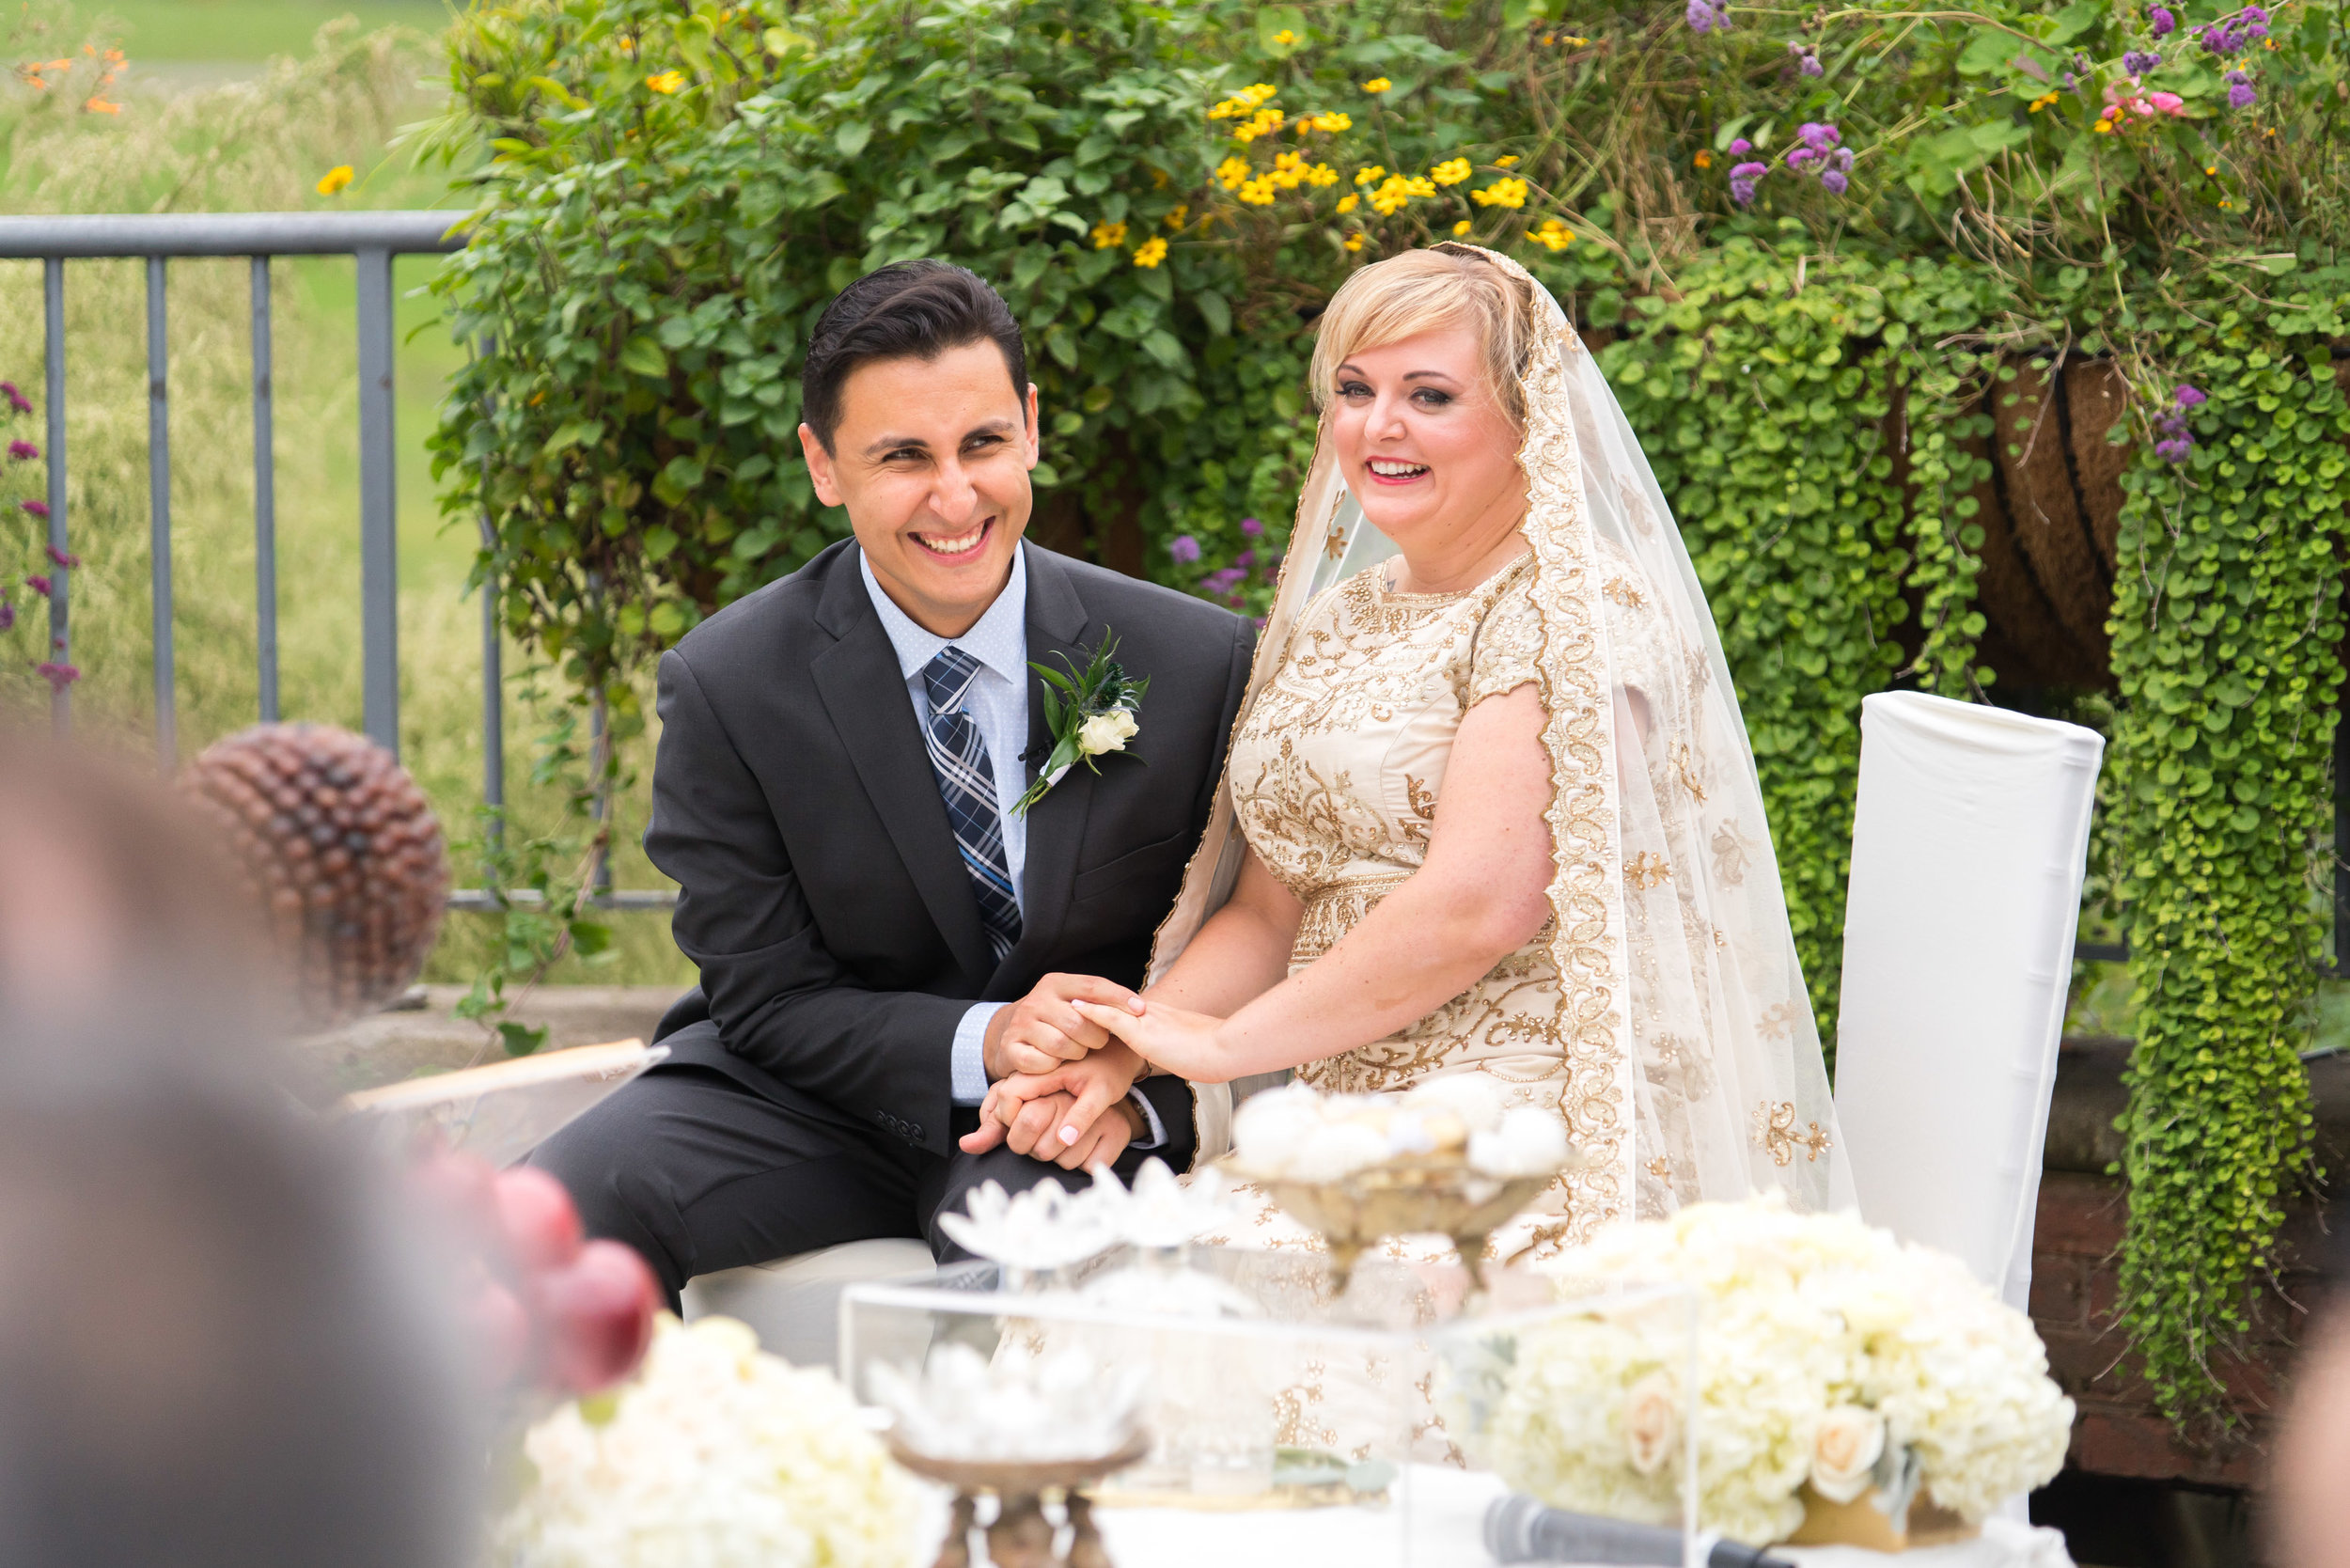 Persian ceremony in front of sofreh at meadowlark gardens